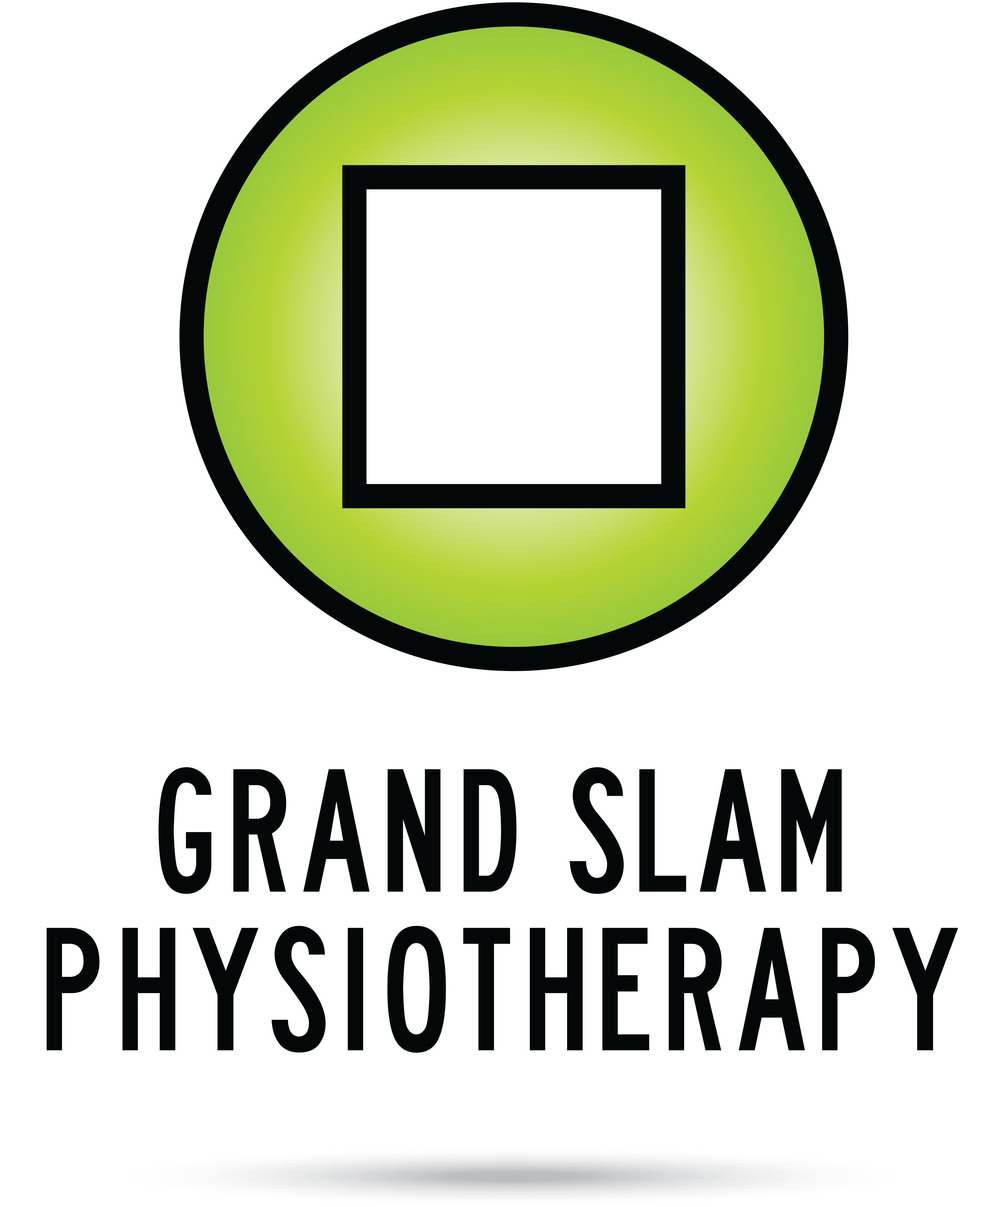 Grand Slam Physiotherapy